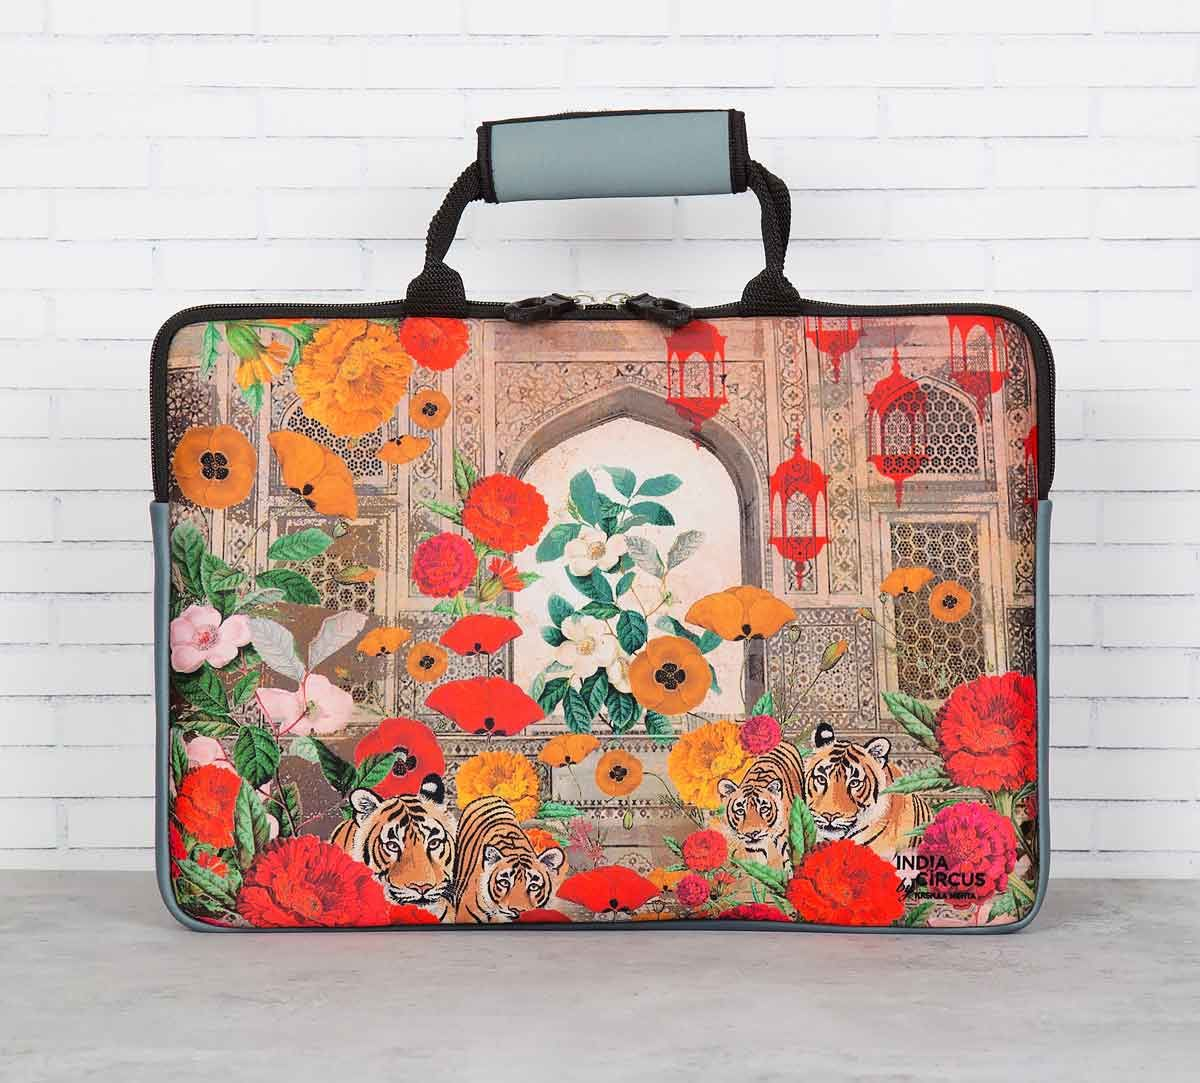 India Circus Floral Burst Laptop Sleeve and Bag